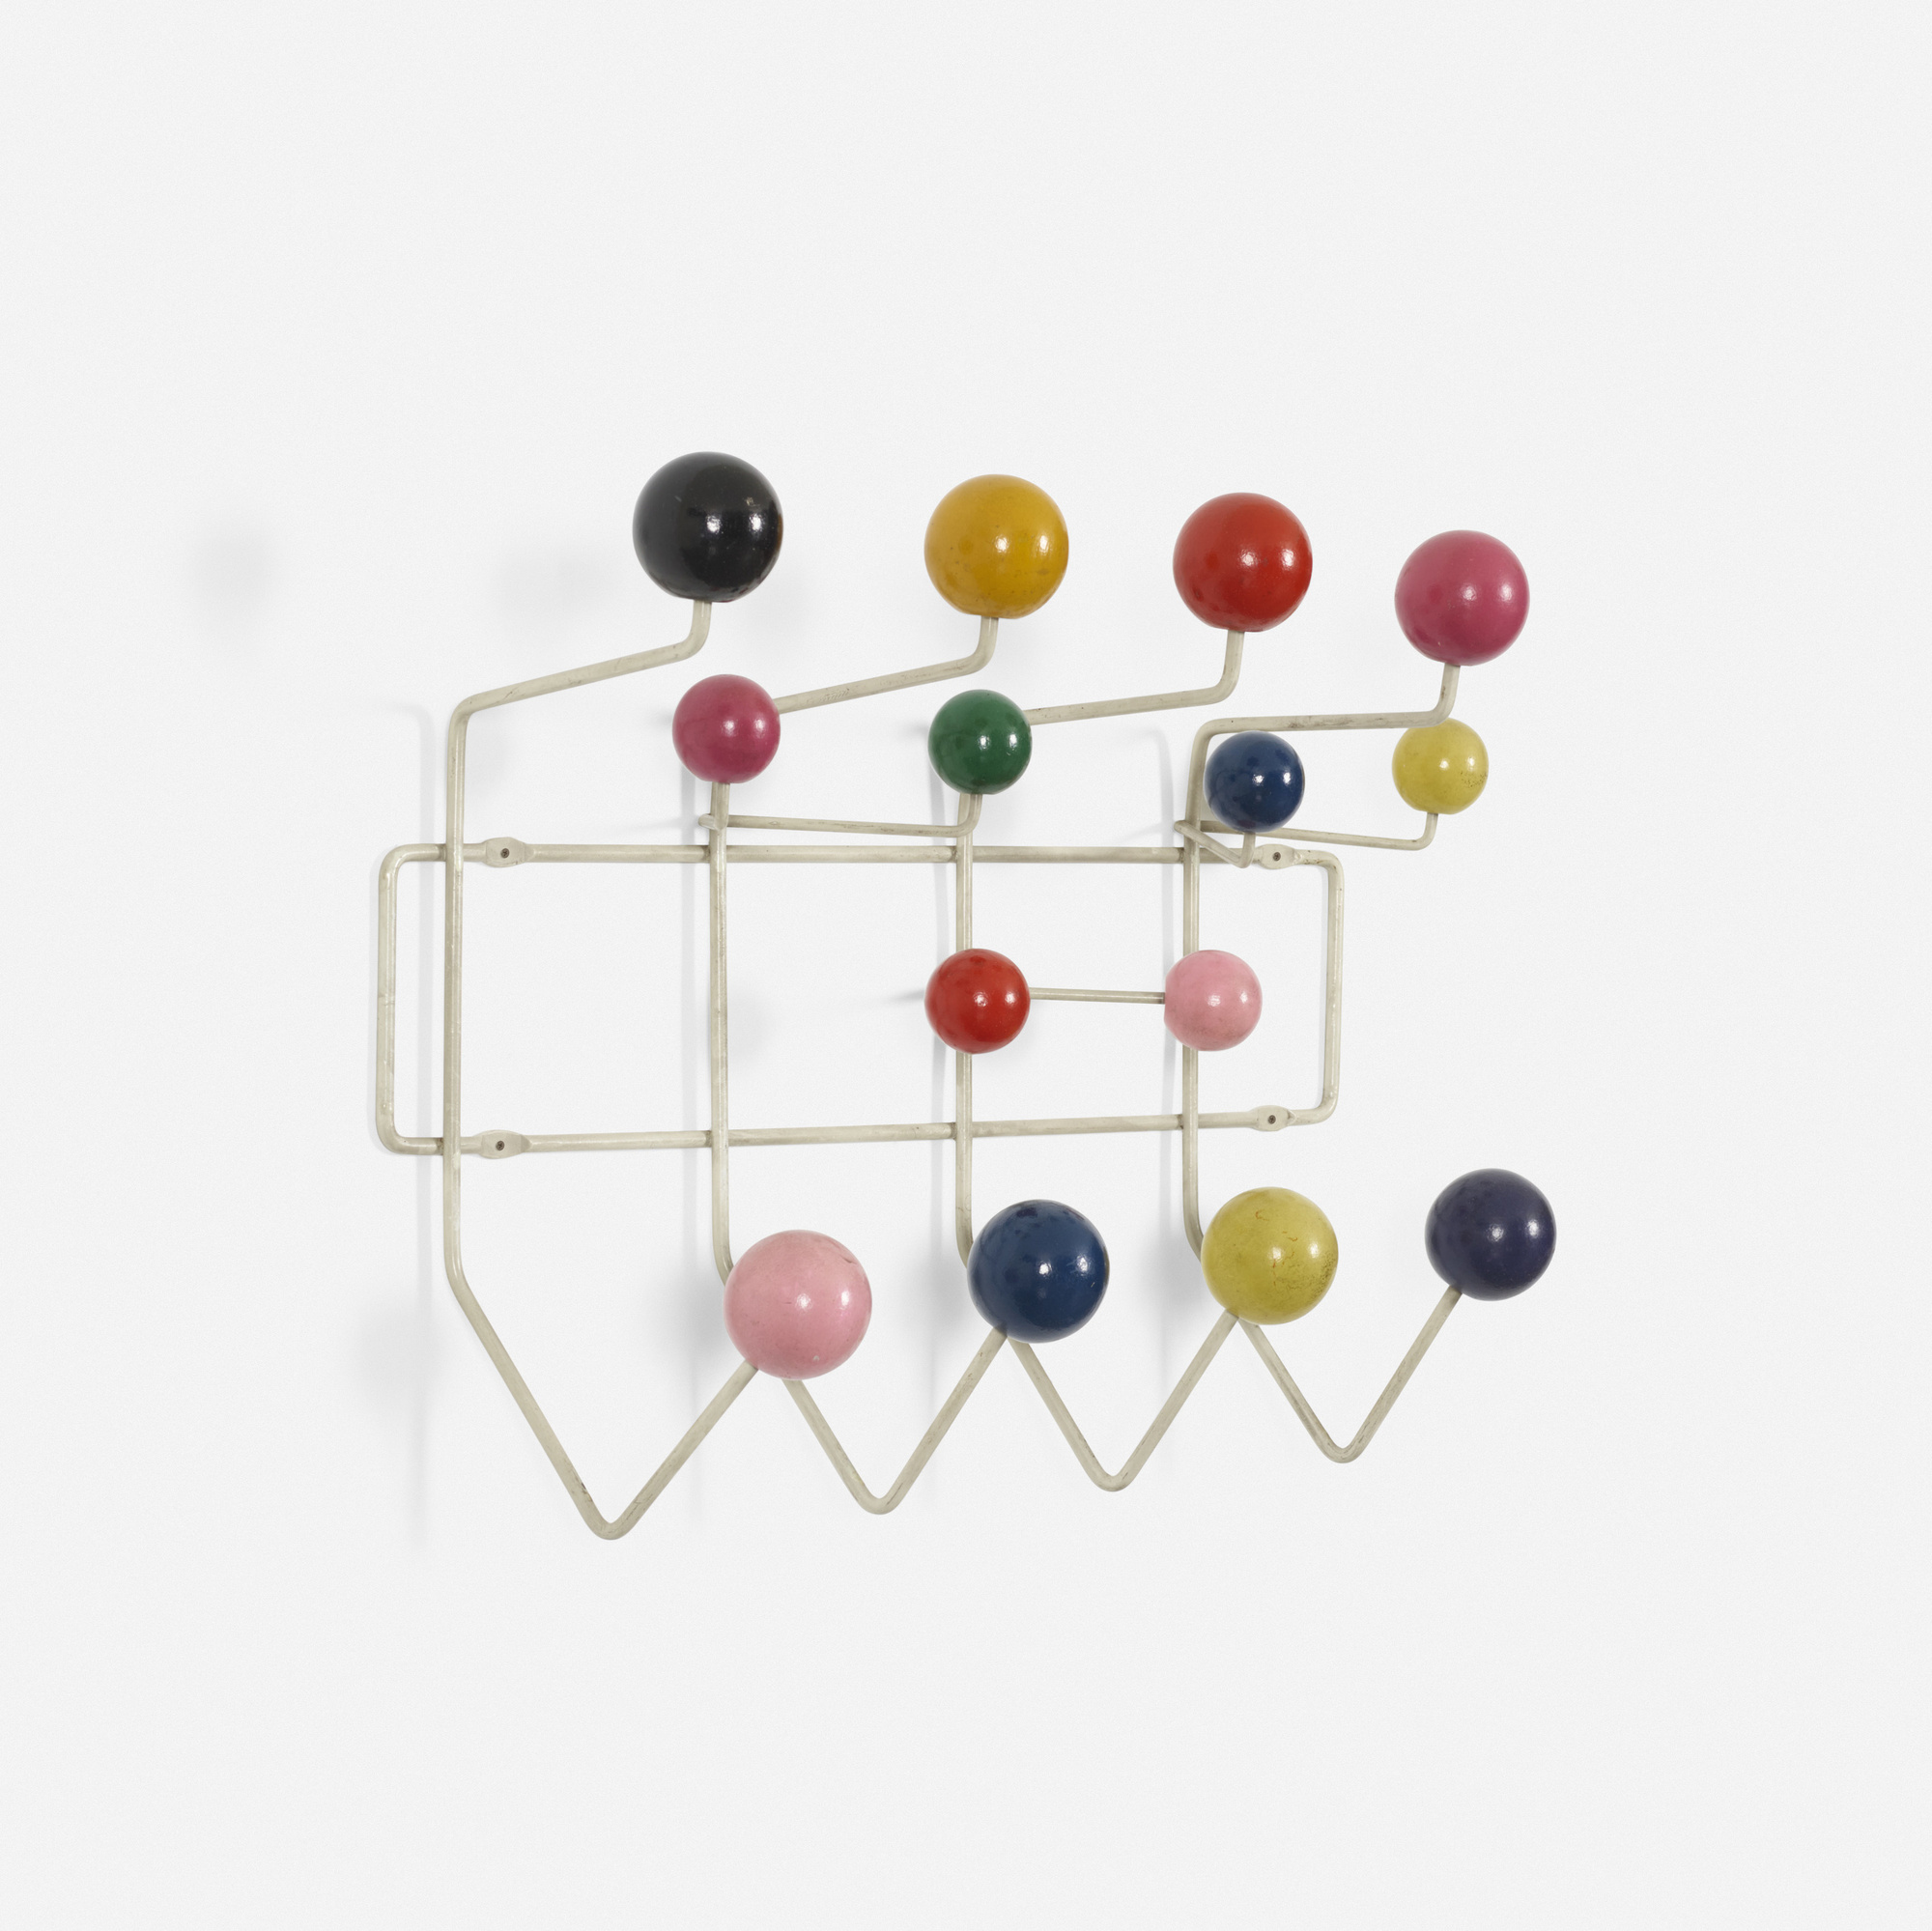 517 Charles And Ray Eames Hang It All American Design 20 September 2018 Auctions Wright Auctions Of Art And Design